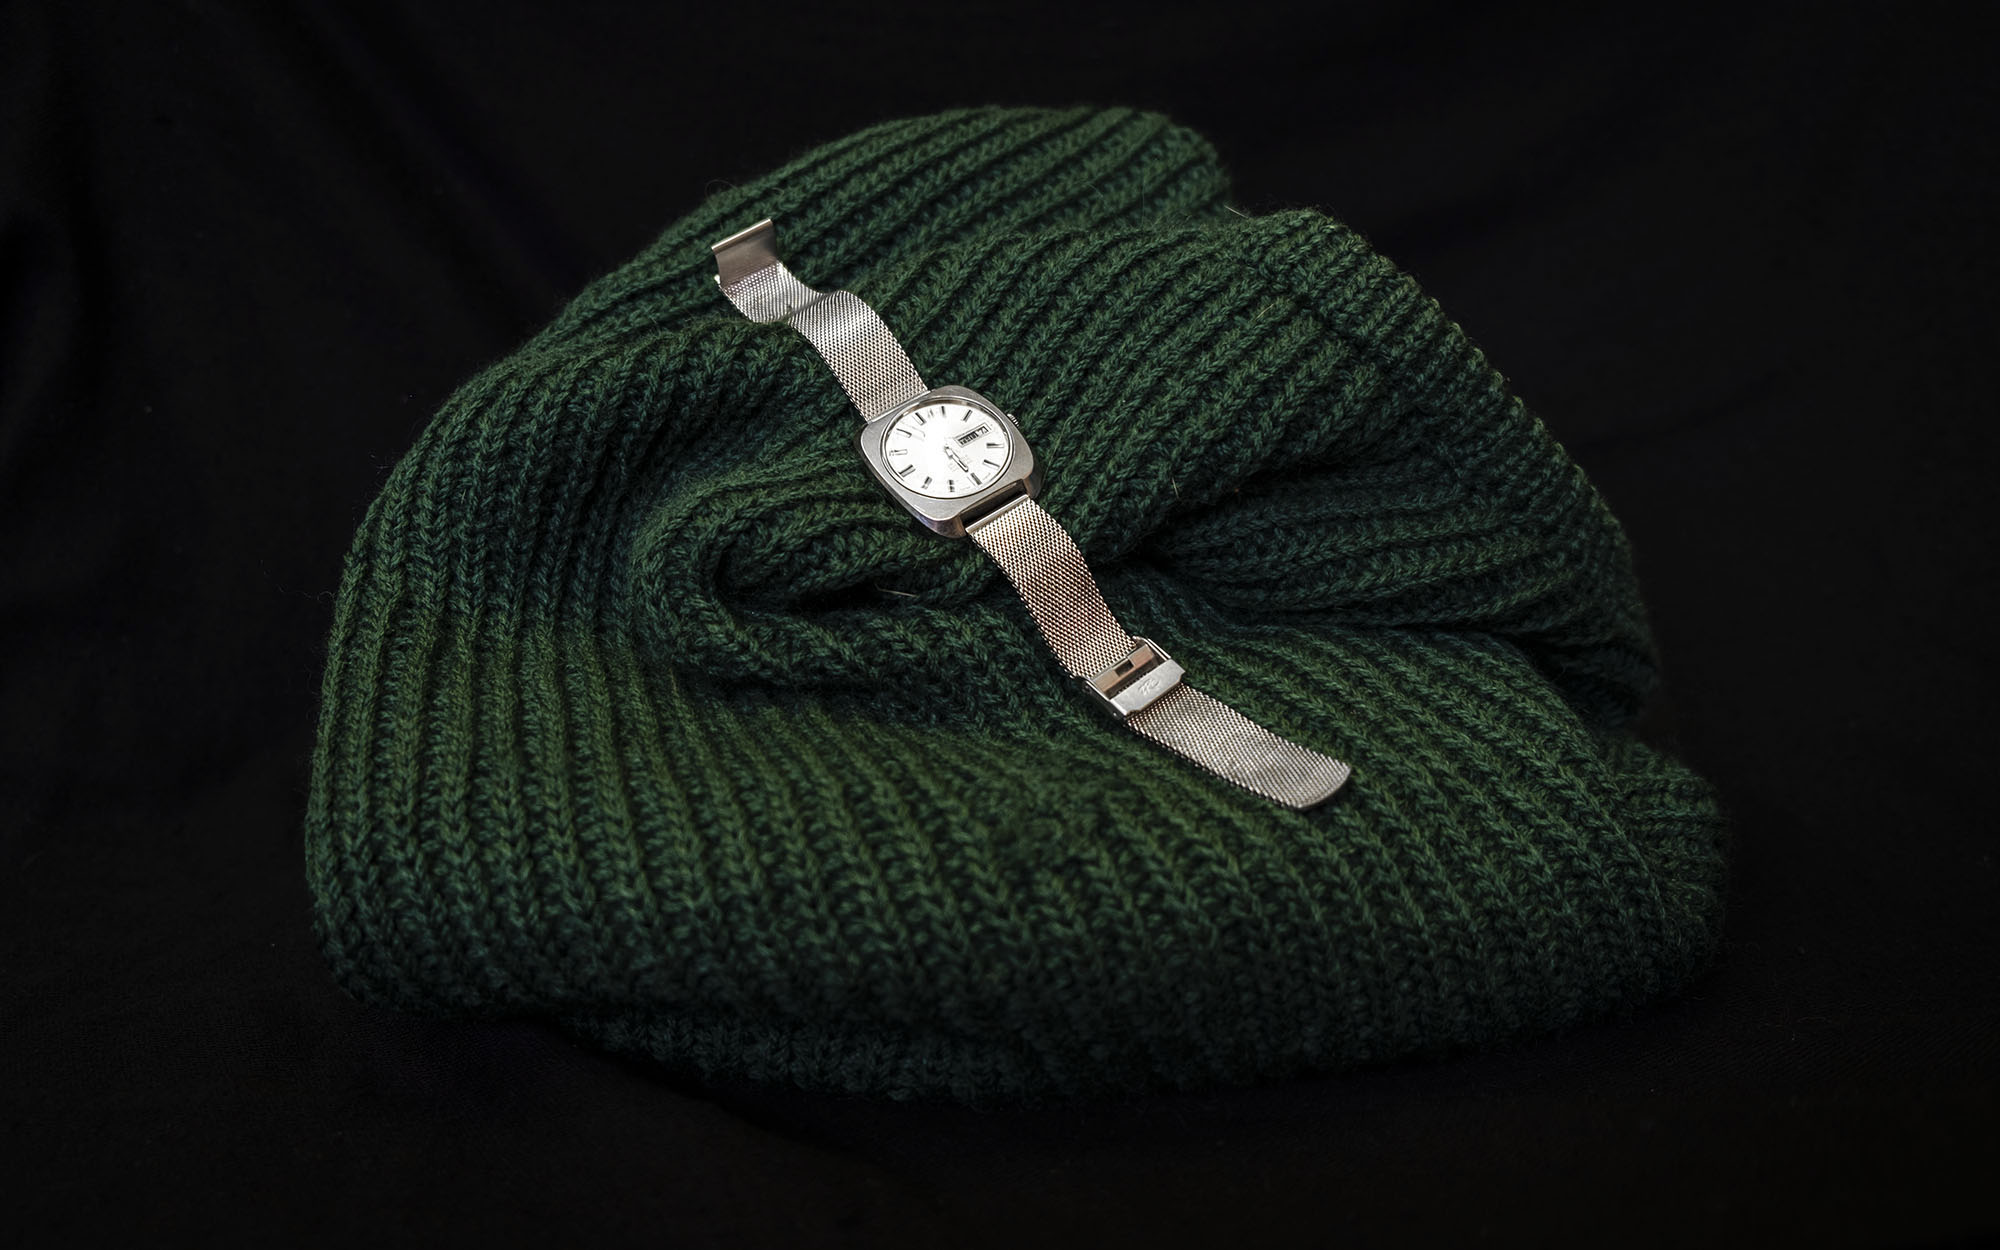 Green knitted jumper and a silver watch